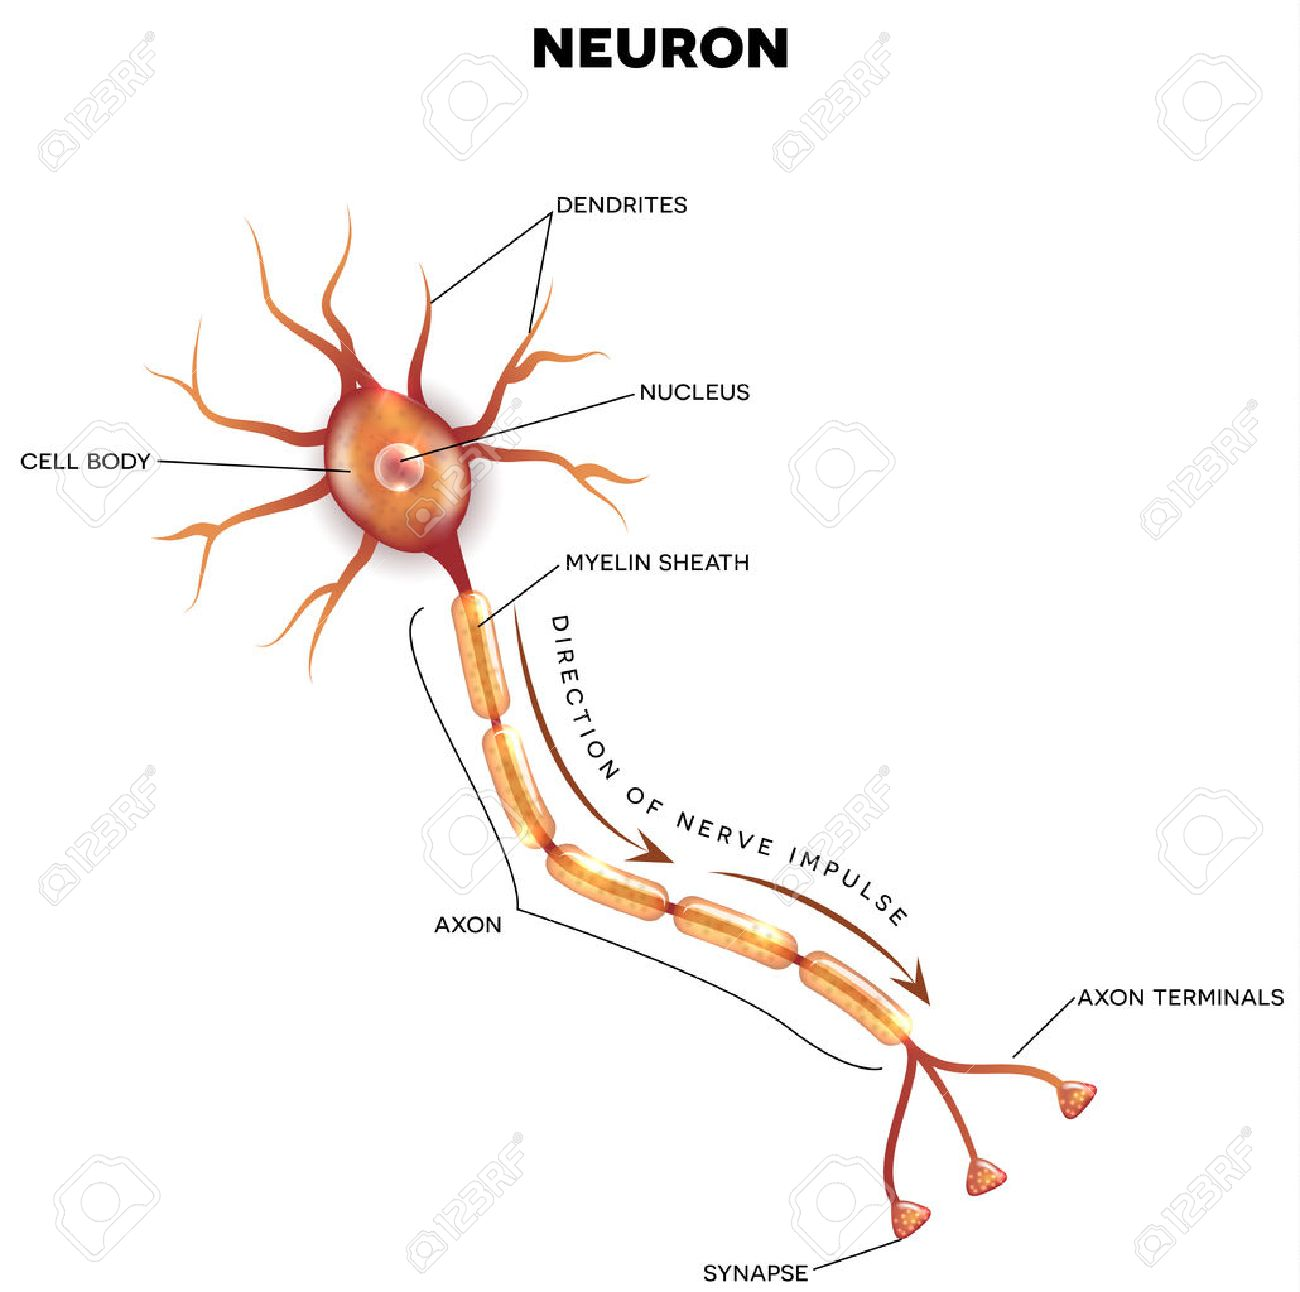 labelled diagram of nerve cell honeywell 3 port valve wiring labeled the neuron that is main part nervous